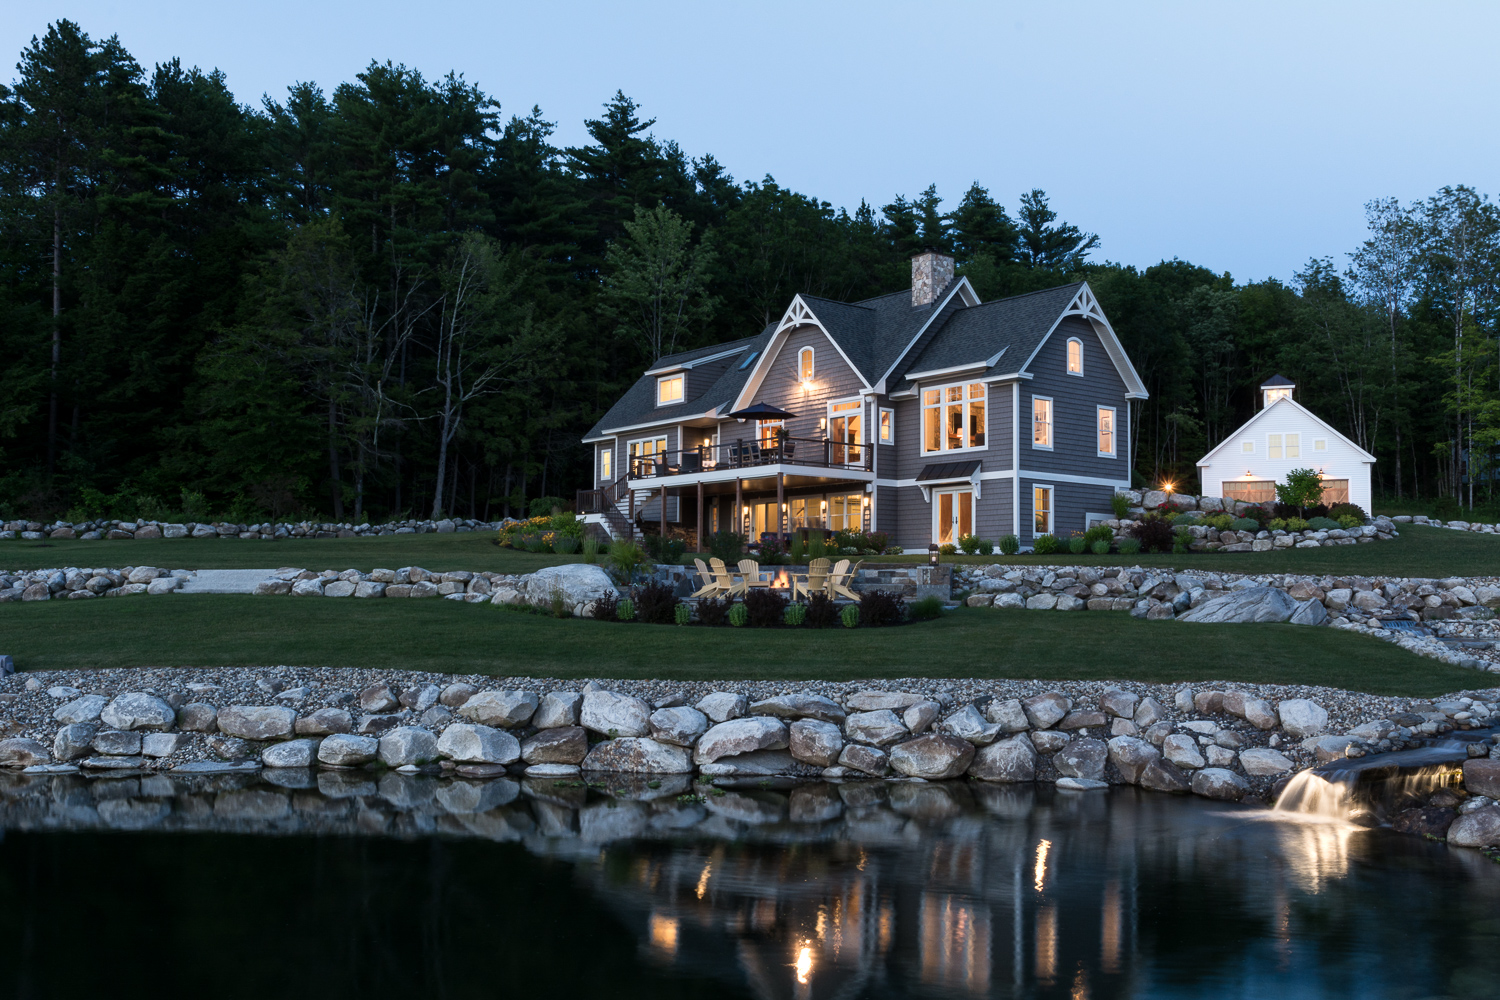 MGM Builders | Building and Designing Custom Homes in Maine Since 1987